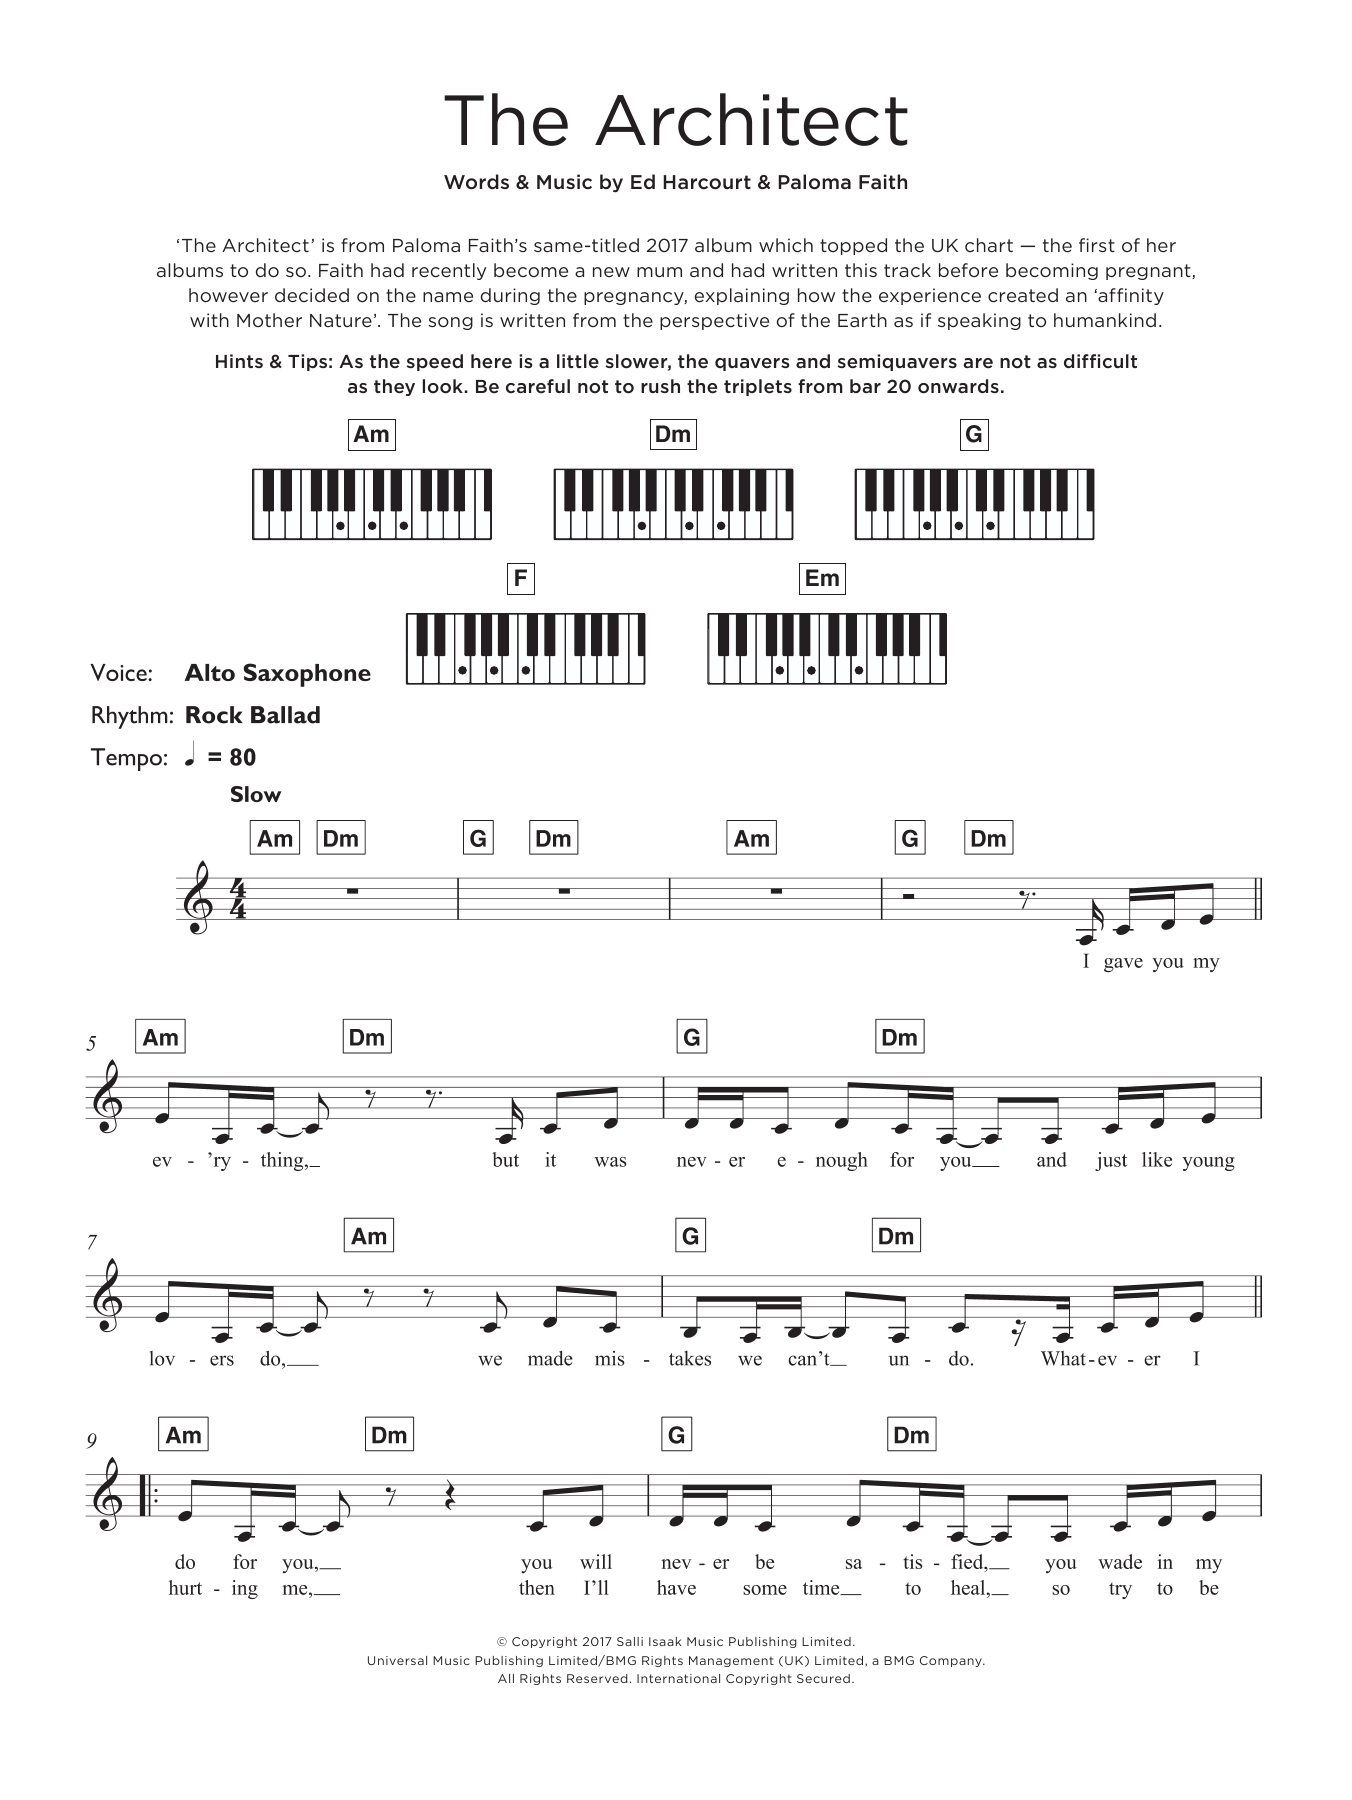 The Architect Sheet Music